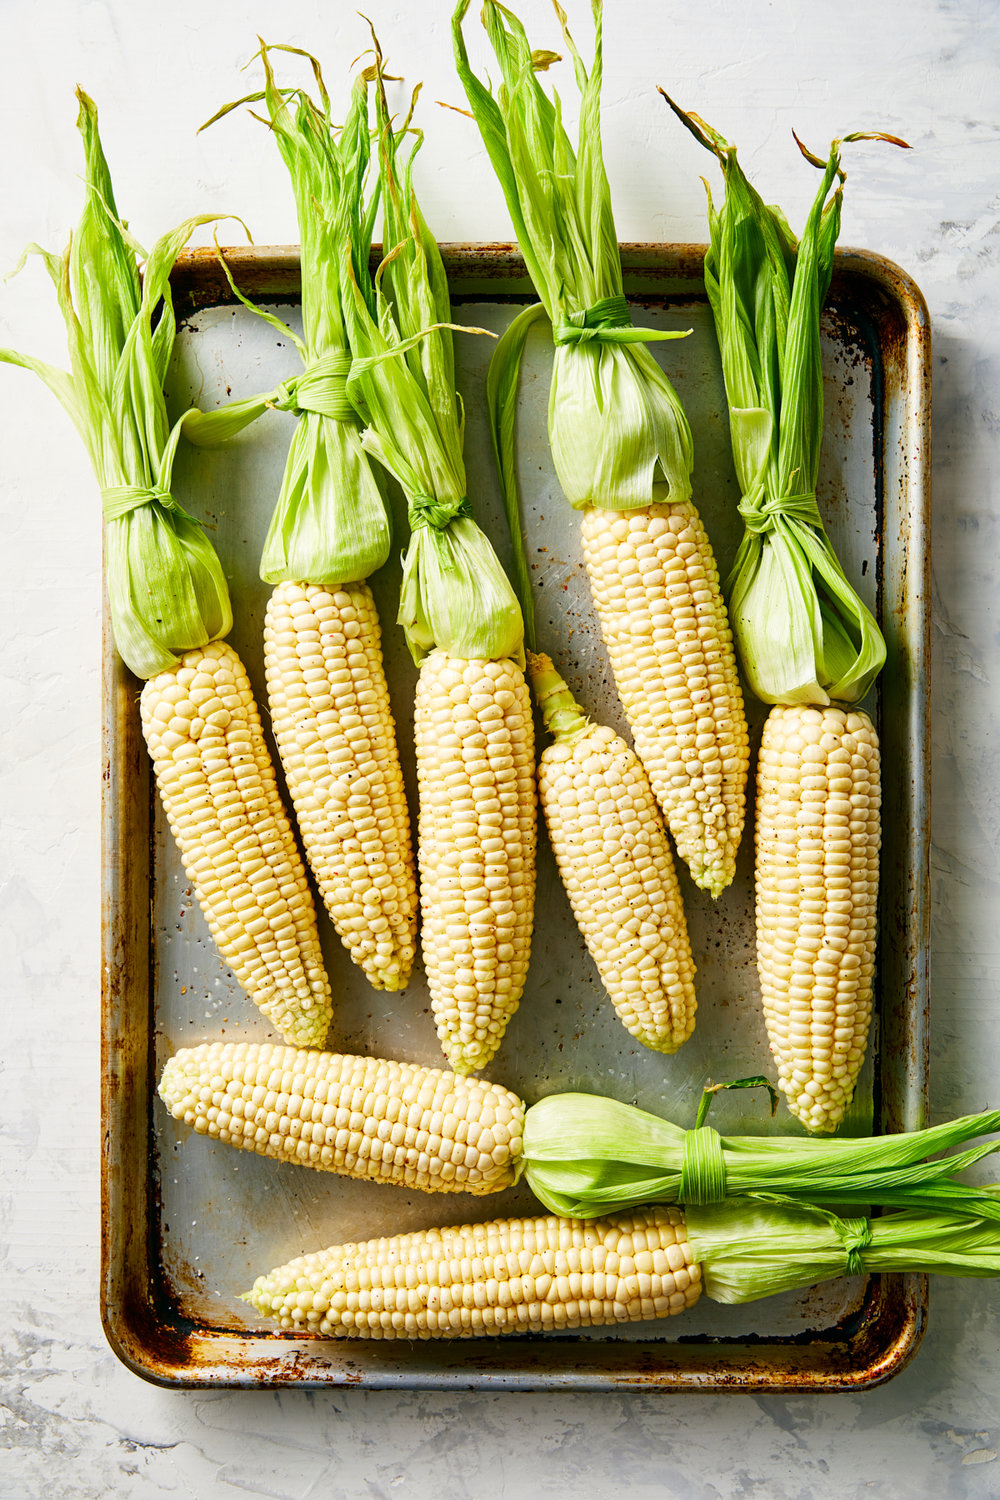 fresh-corn-on-the-cob-peeled-on-baking-pan.jpg